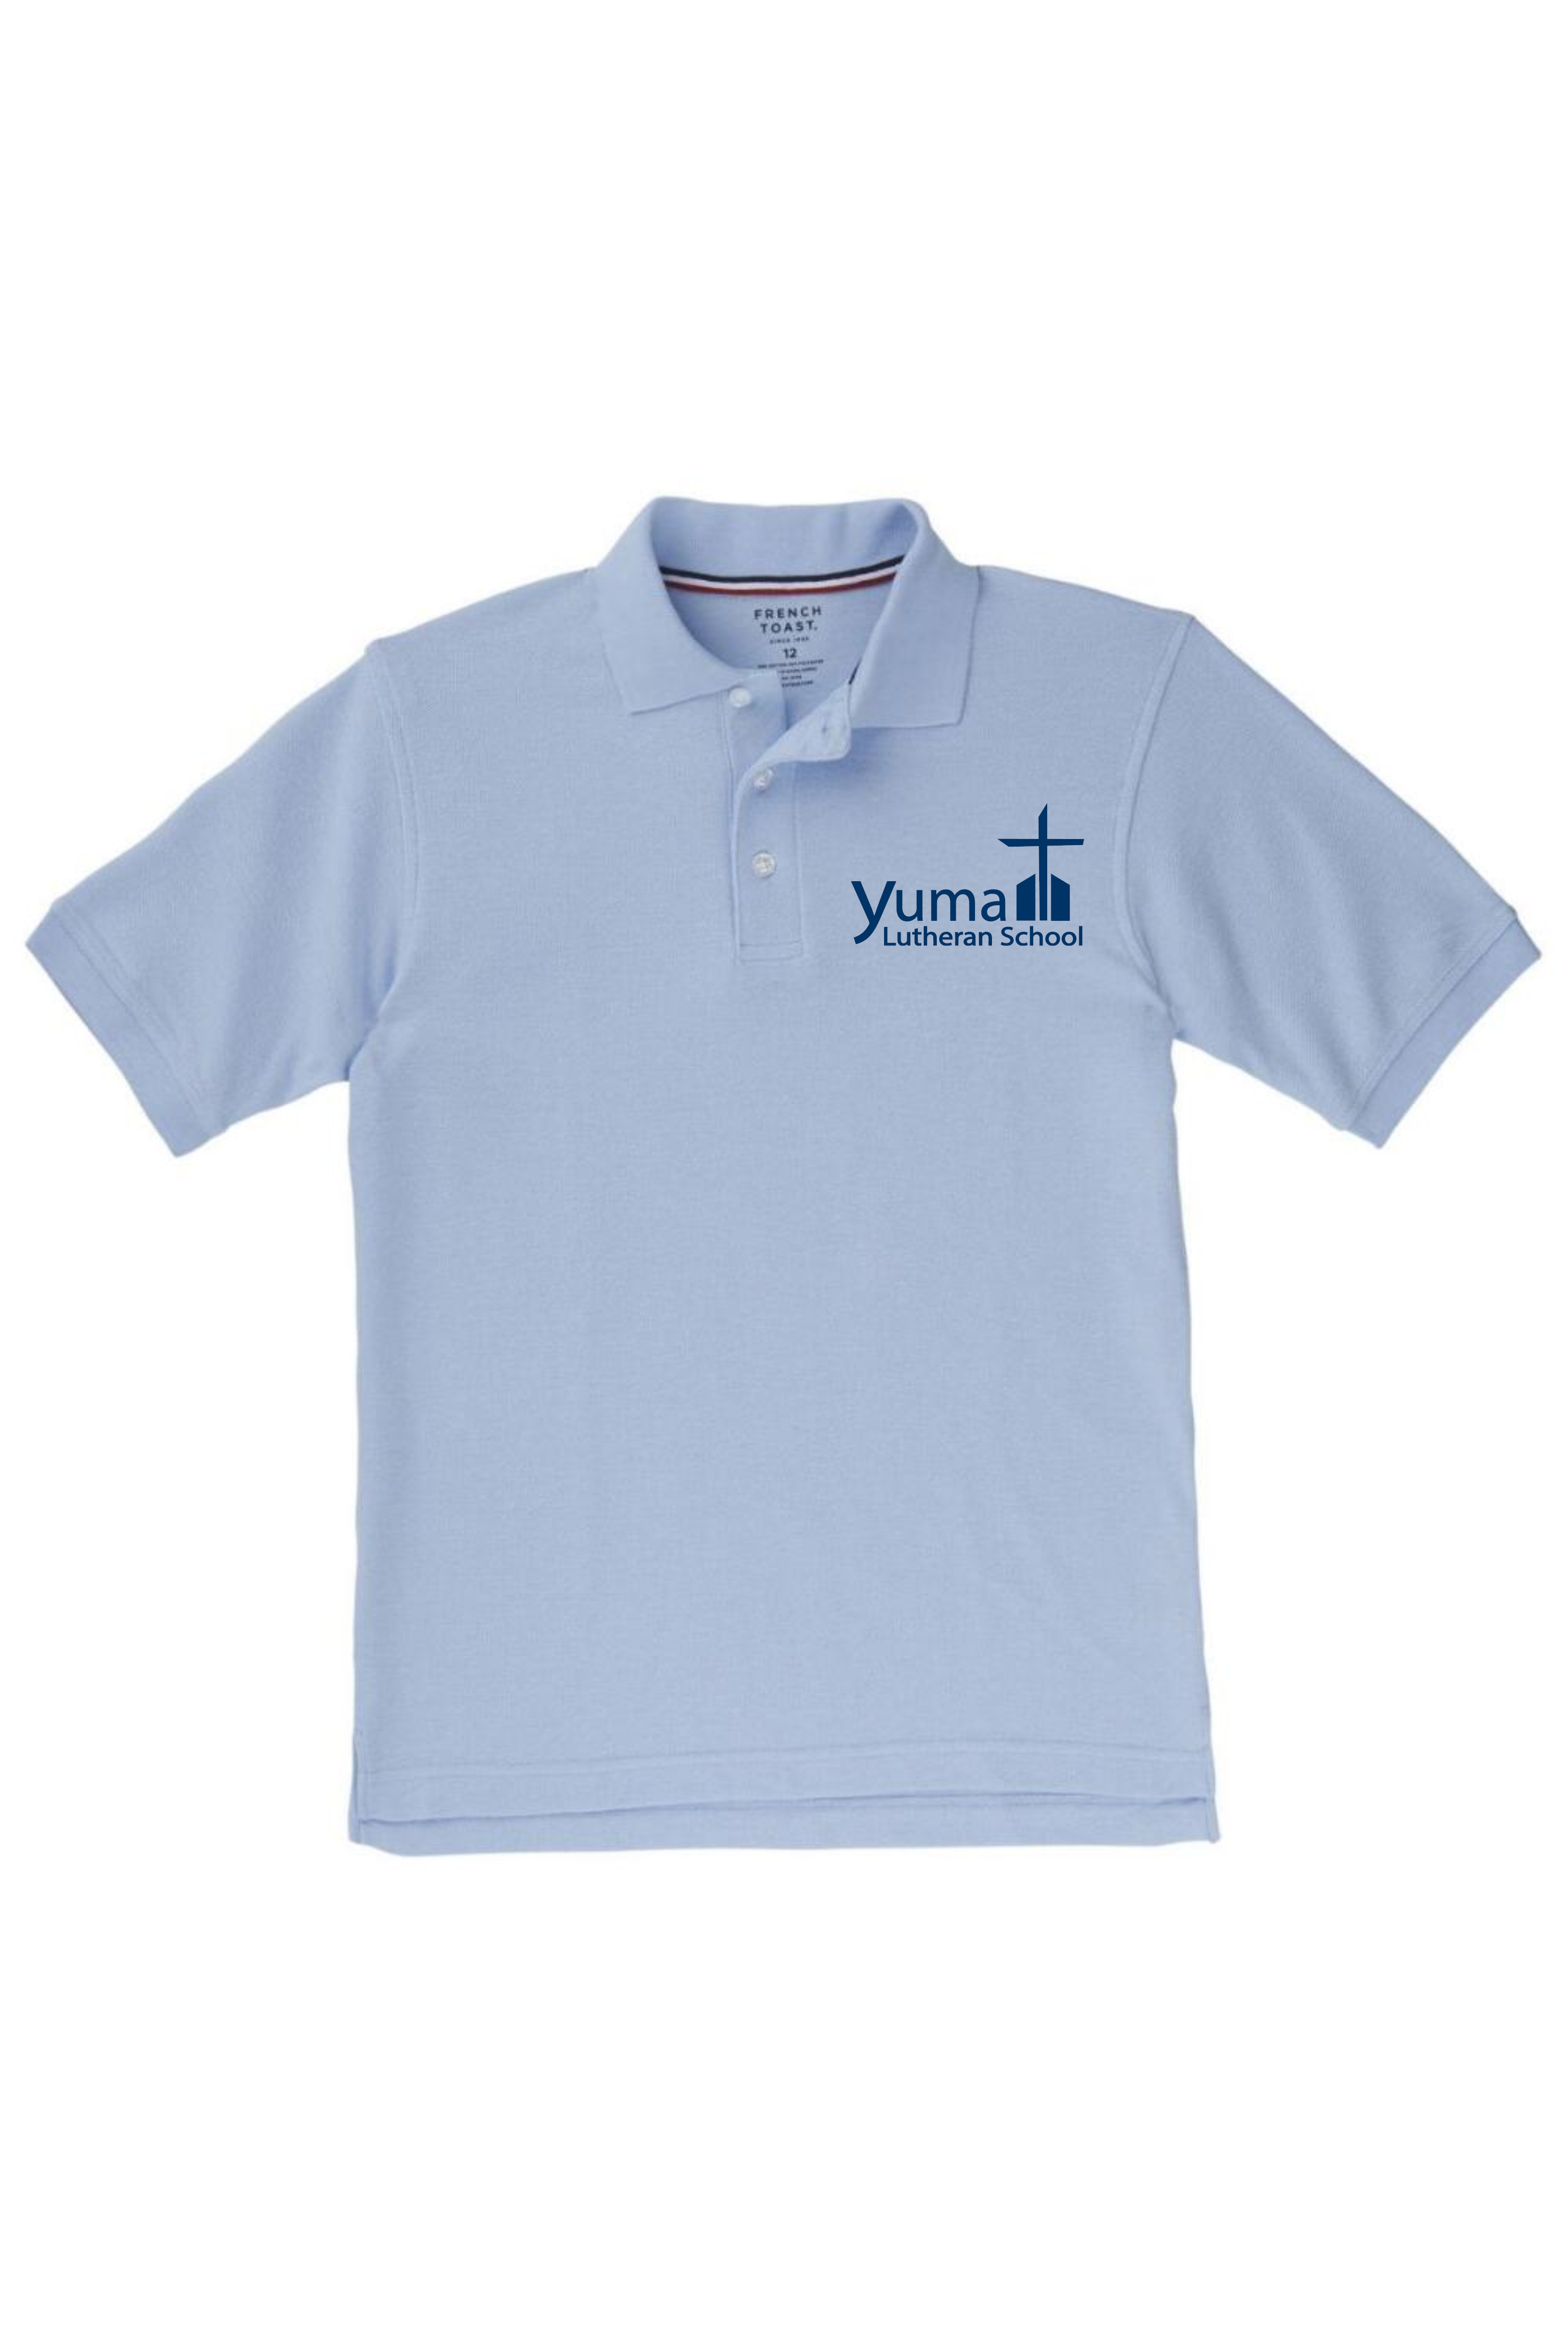 French Toast Boy's Short Sleeve Pique Polo (Polo Size: 4T, French Toast Polo Color: Lt Blue - YLS)